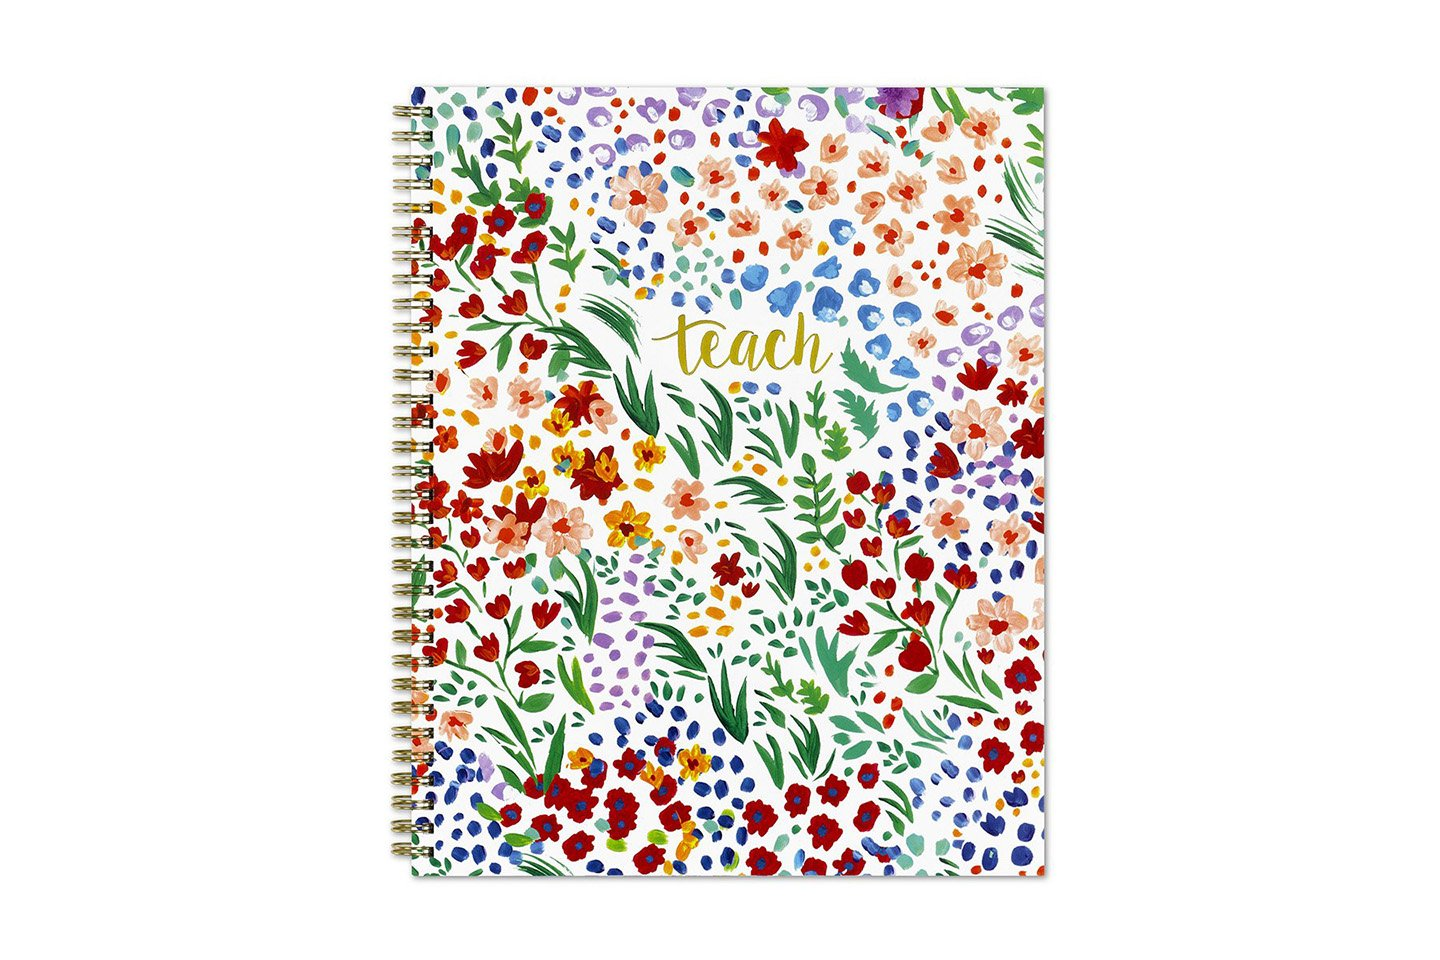 Blue Sky Teacher Weekly/Monthly Academic Planner in Ditsy Dapple Floral